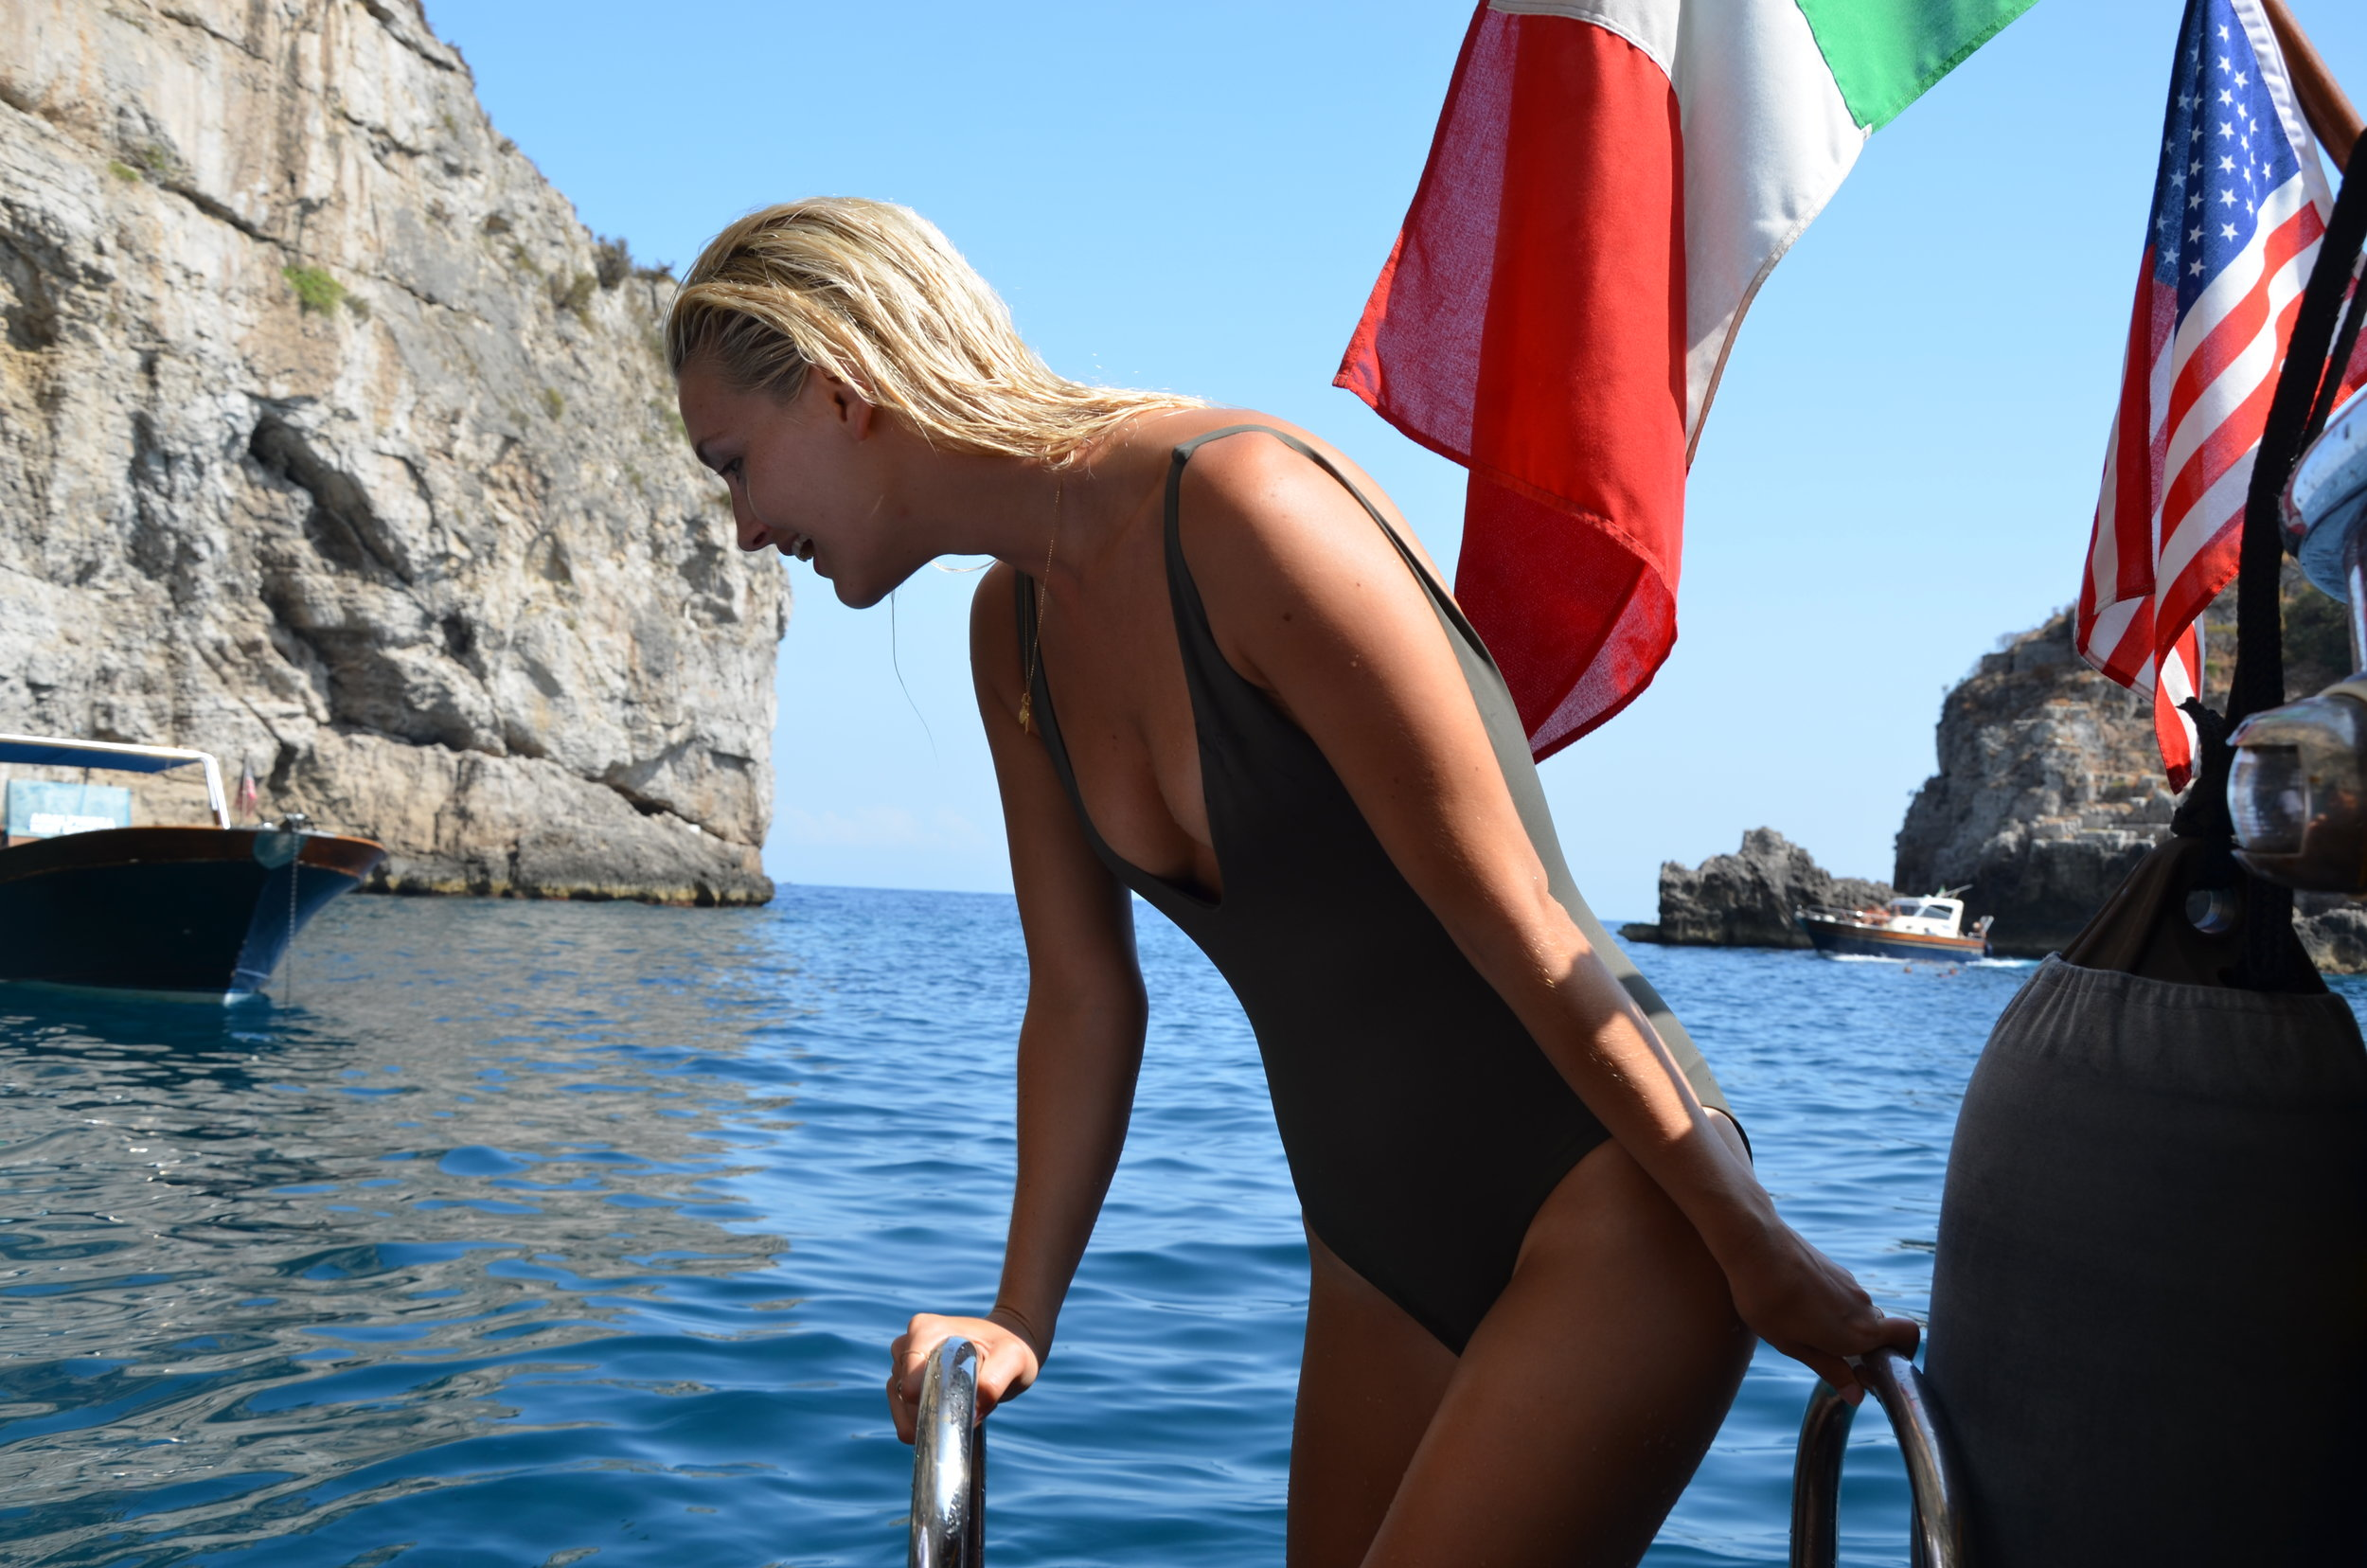 FEEDING THE FISH FROM THE BOAT IN  HER ONE-PIECE